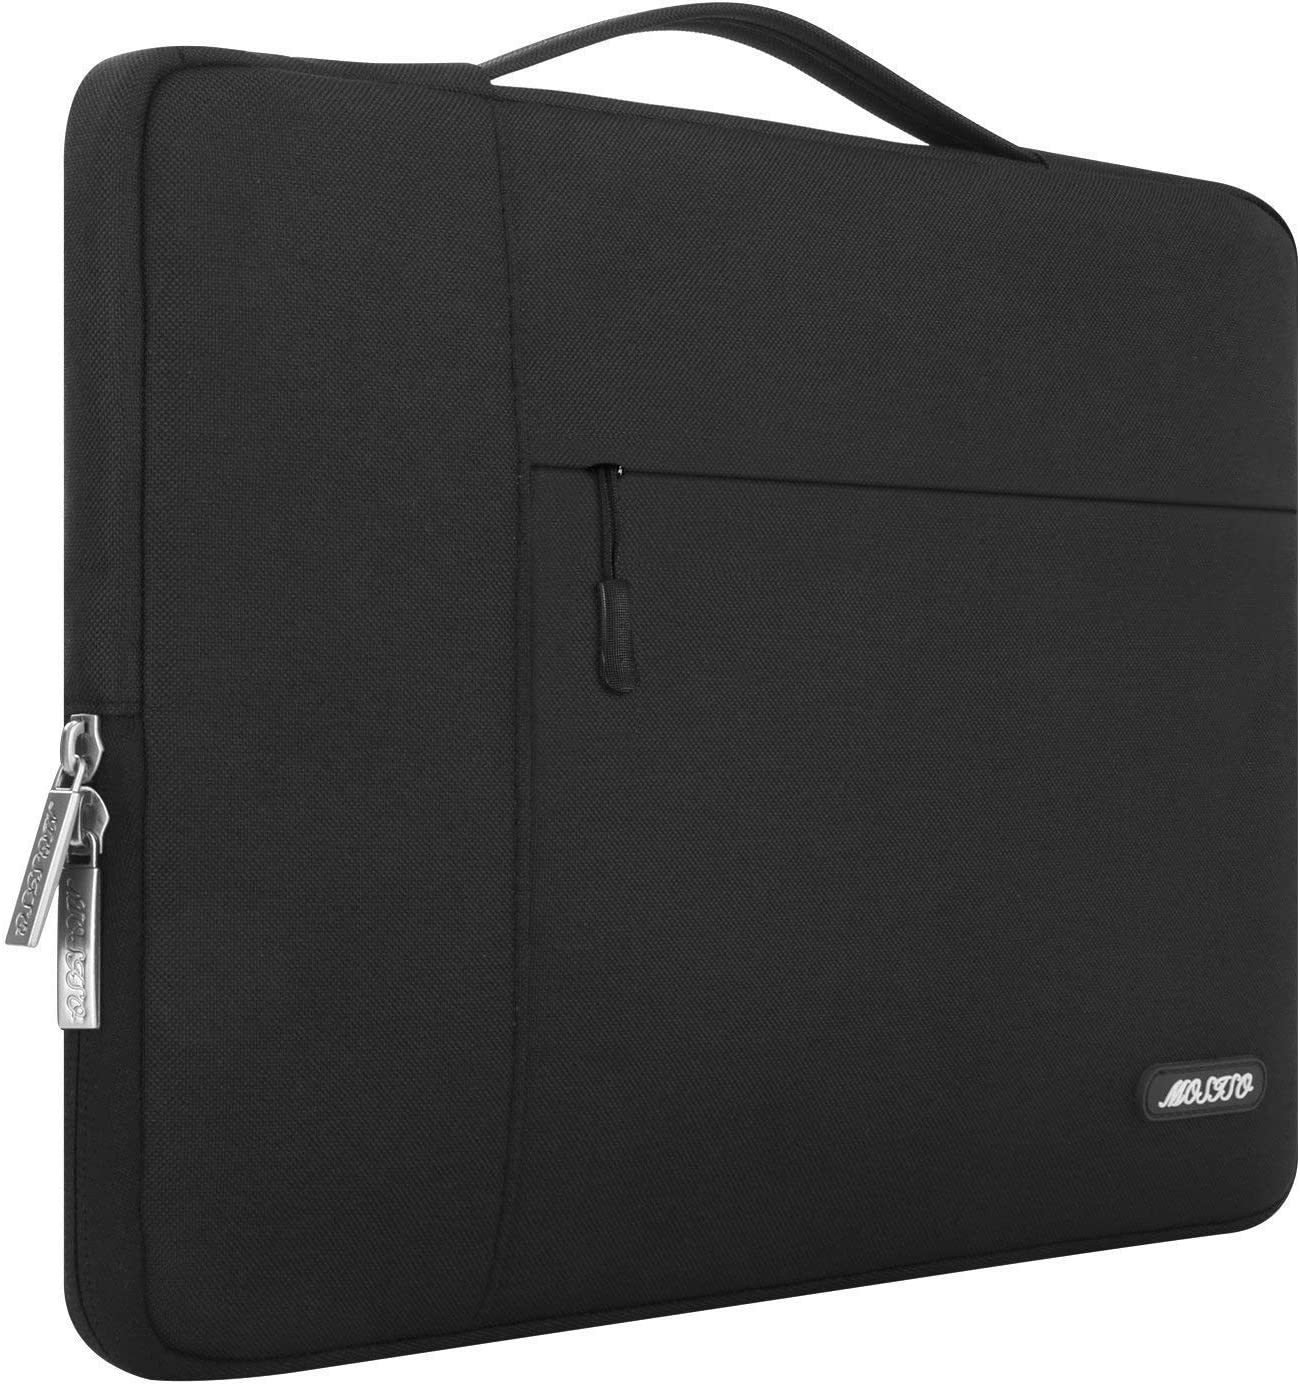 MOSISO Laptop Sleeve Compatible with 13-13.3 inch MacBook Air, MacBook Pro, Notebook Computer, Polyester Multifunctional Briefcase Carrying Bag, Black